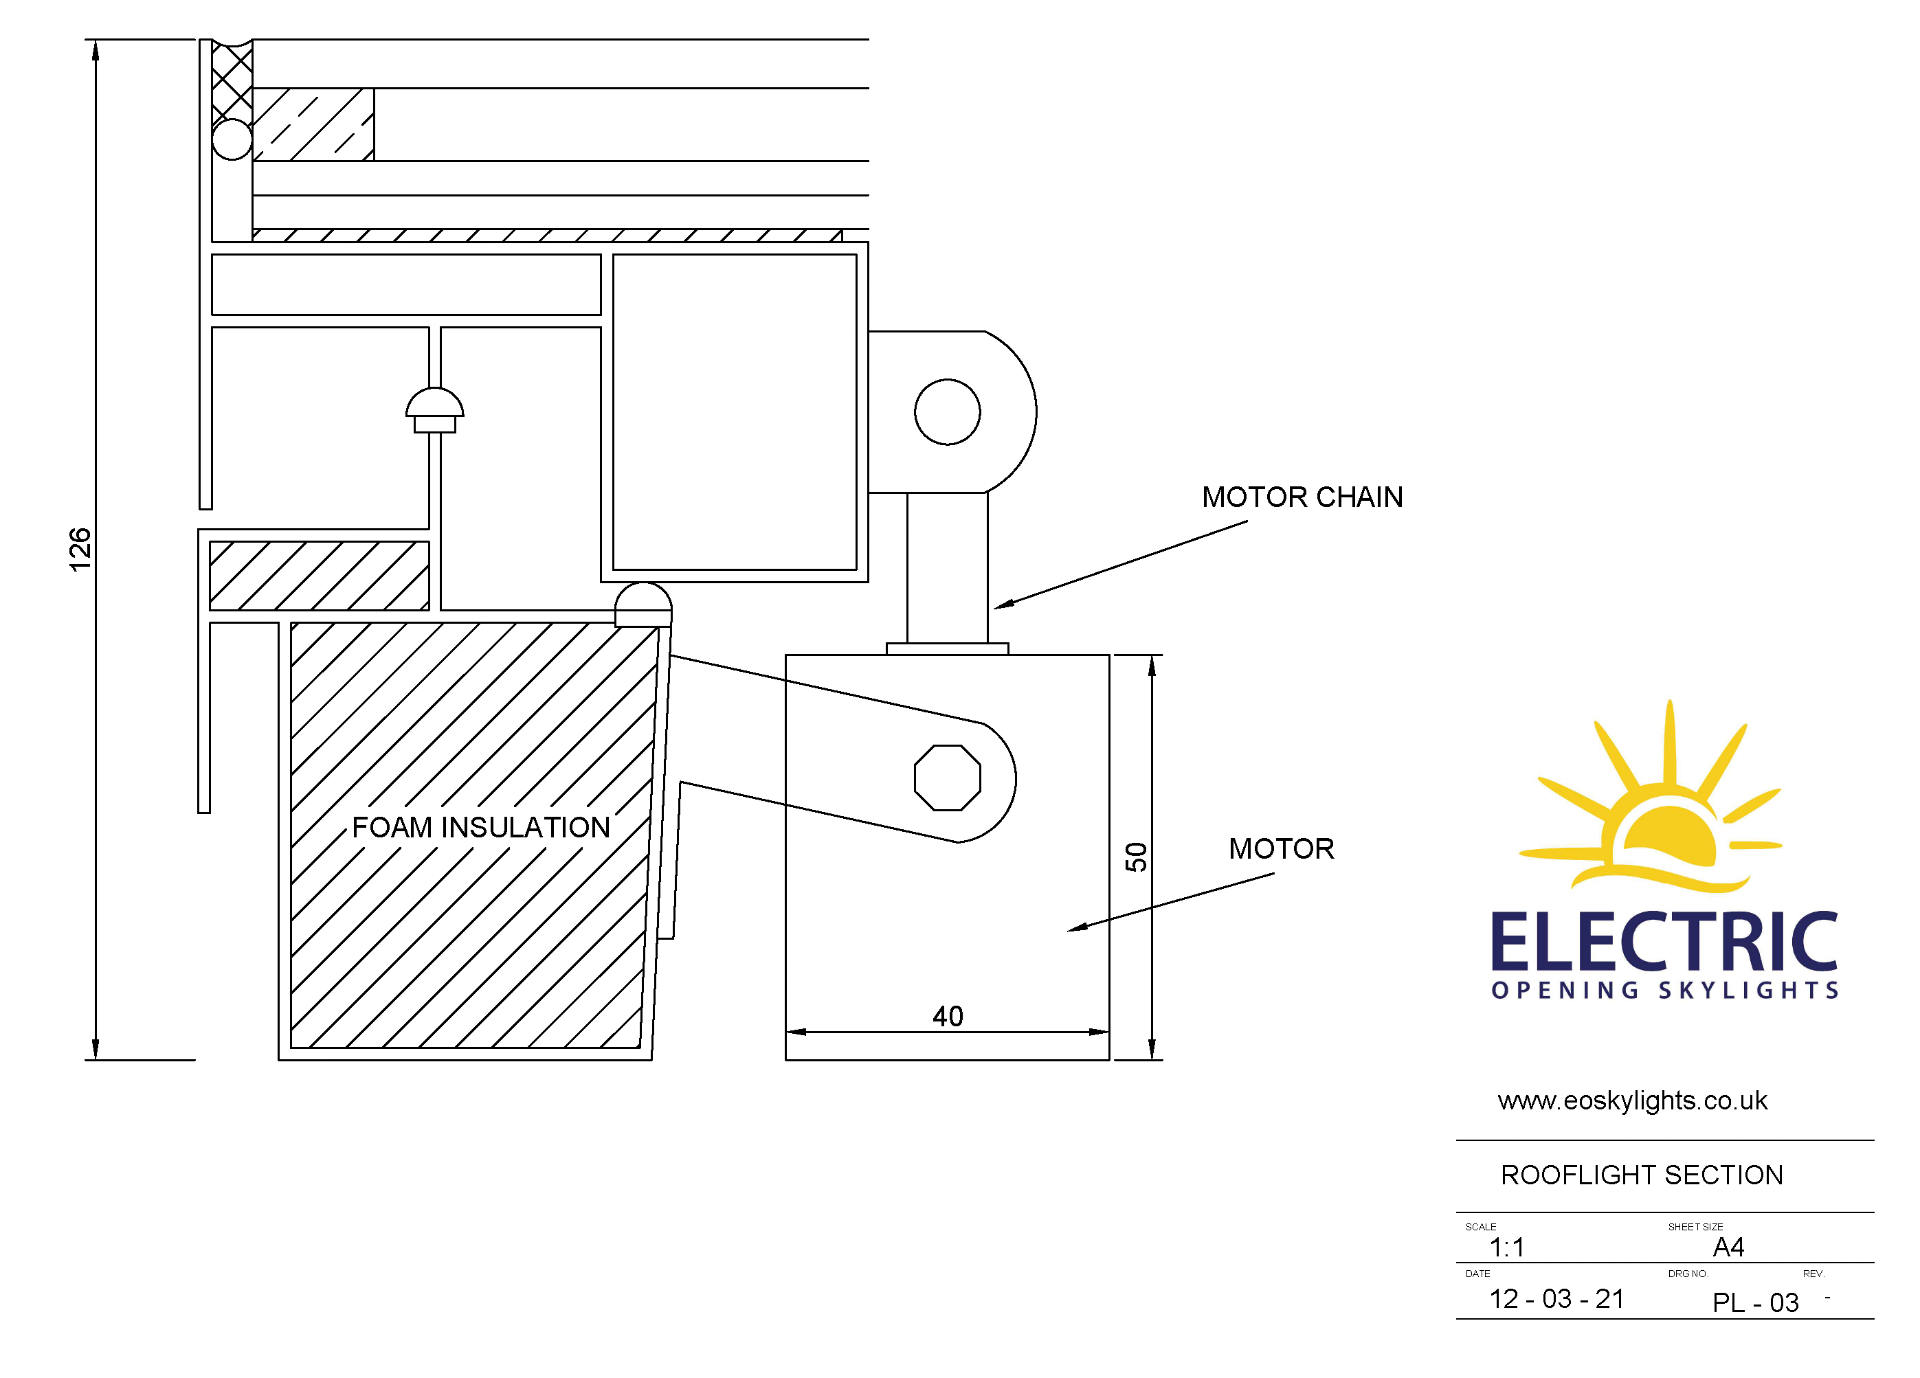 Panoroof (EOS) Electric Opening Skylight 600x900mm - Aluminiun Frame Double Glazed Laminated Self- - Image 4 of 6